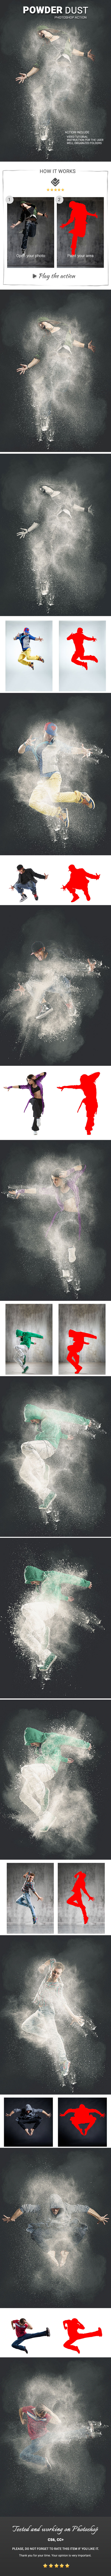 Powder dust Photoshop Action - Photo Effects Actions